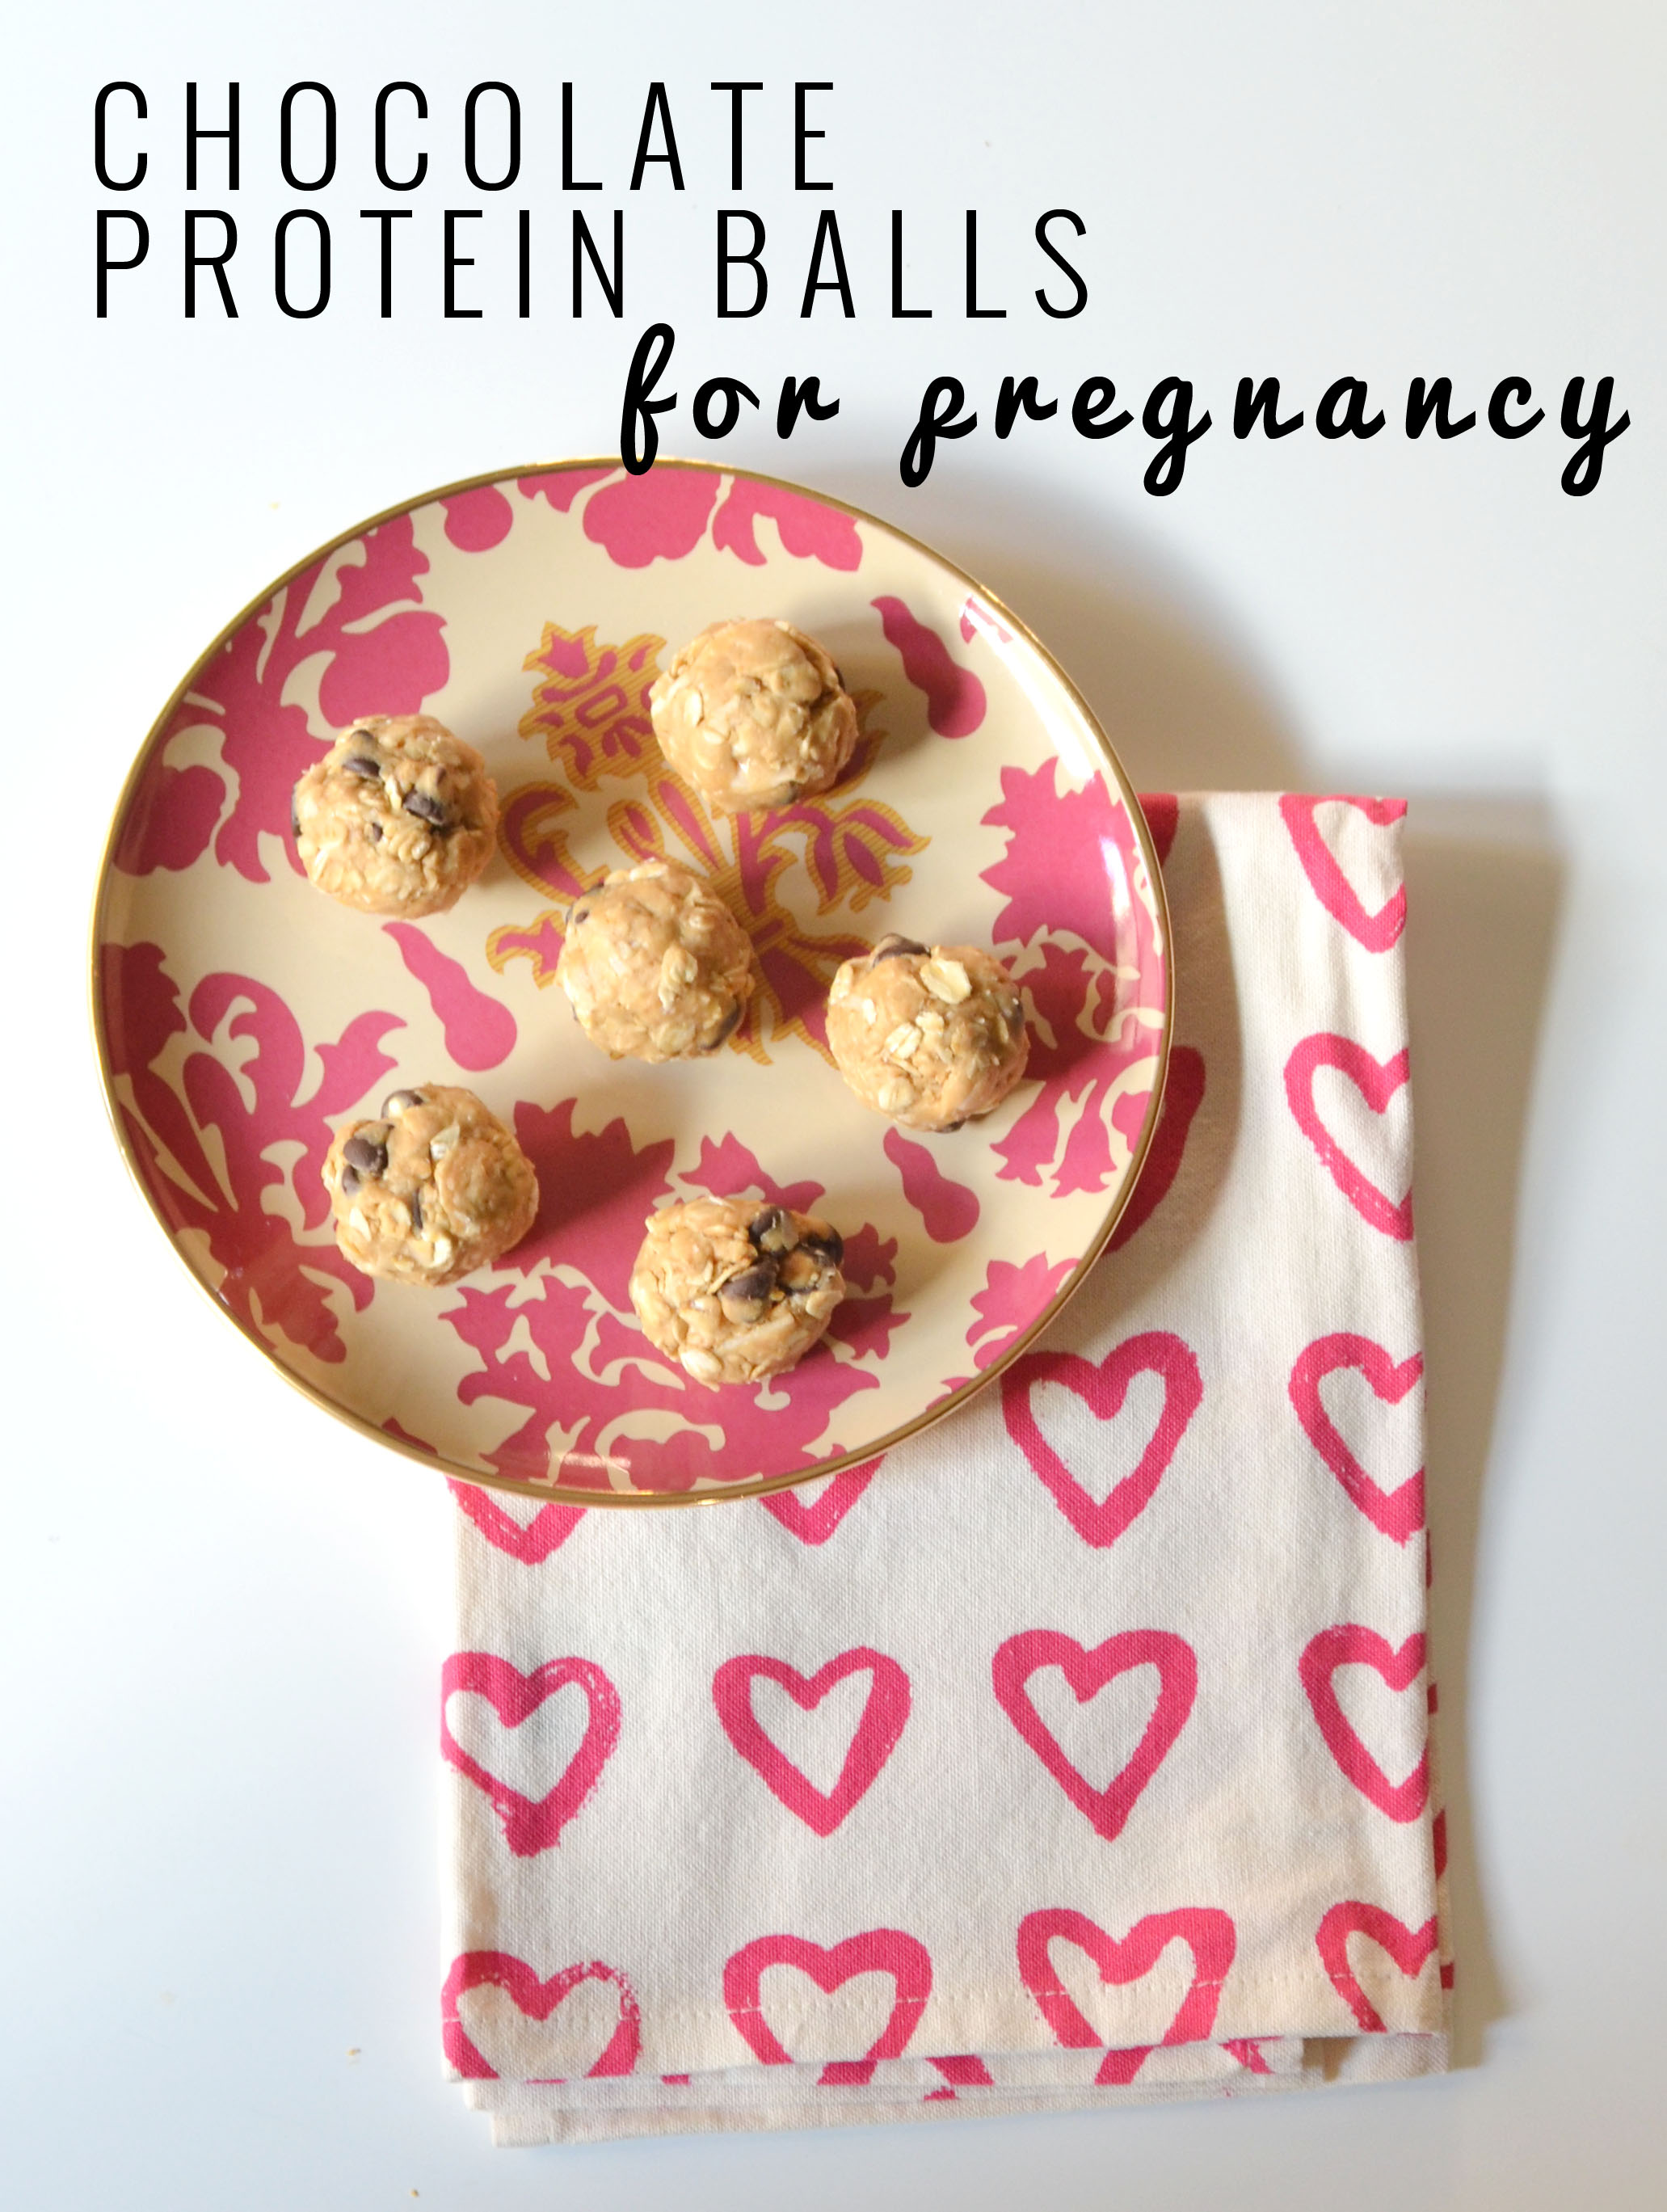 Chocolate Pregnancy Protein Ball Recipe | Momma Society | www.mommasociety.com